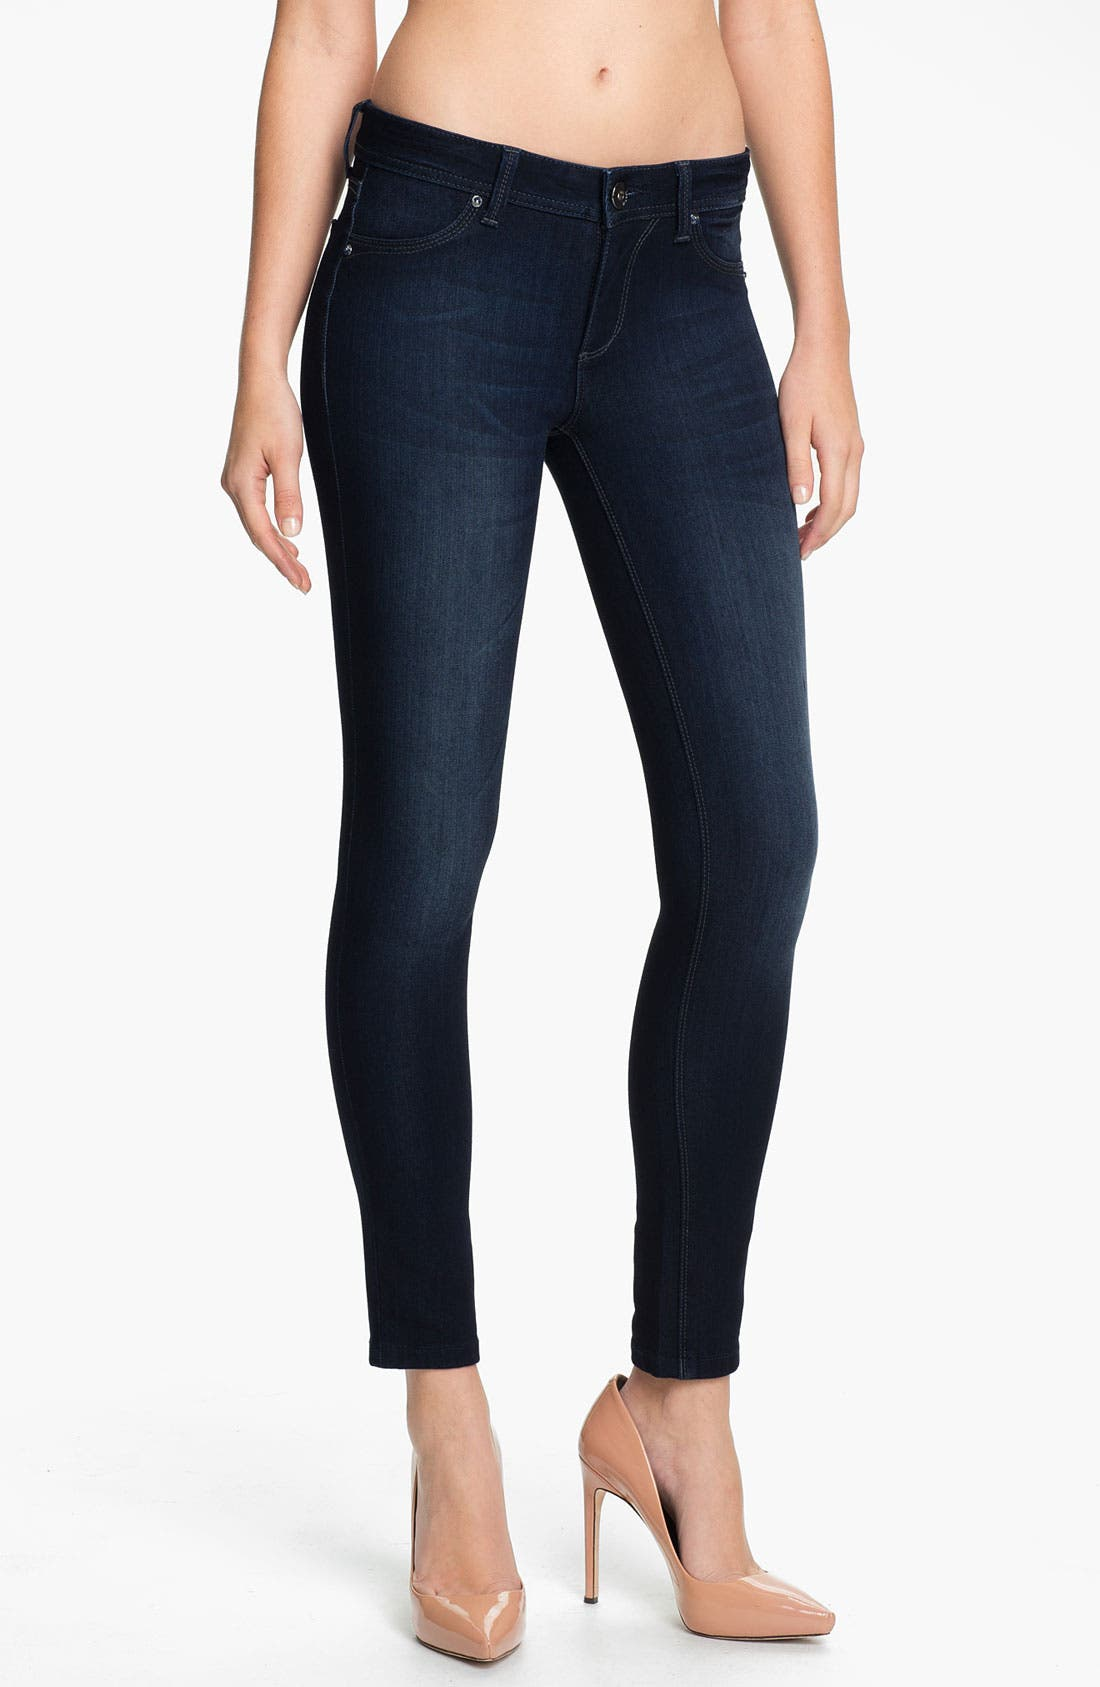 Alternate Image 1 Selected - DL1961 'Emma' Power Legging Jeans (Bloom)